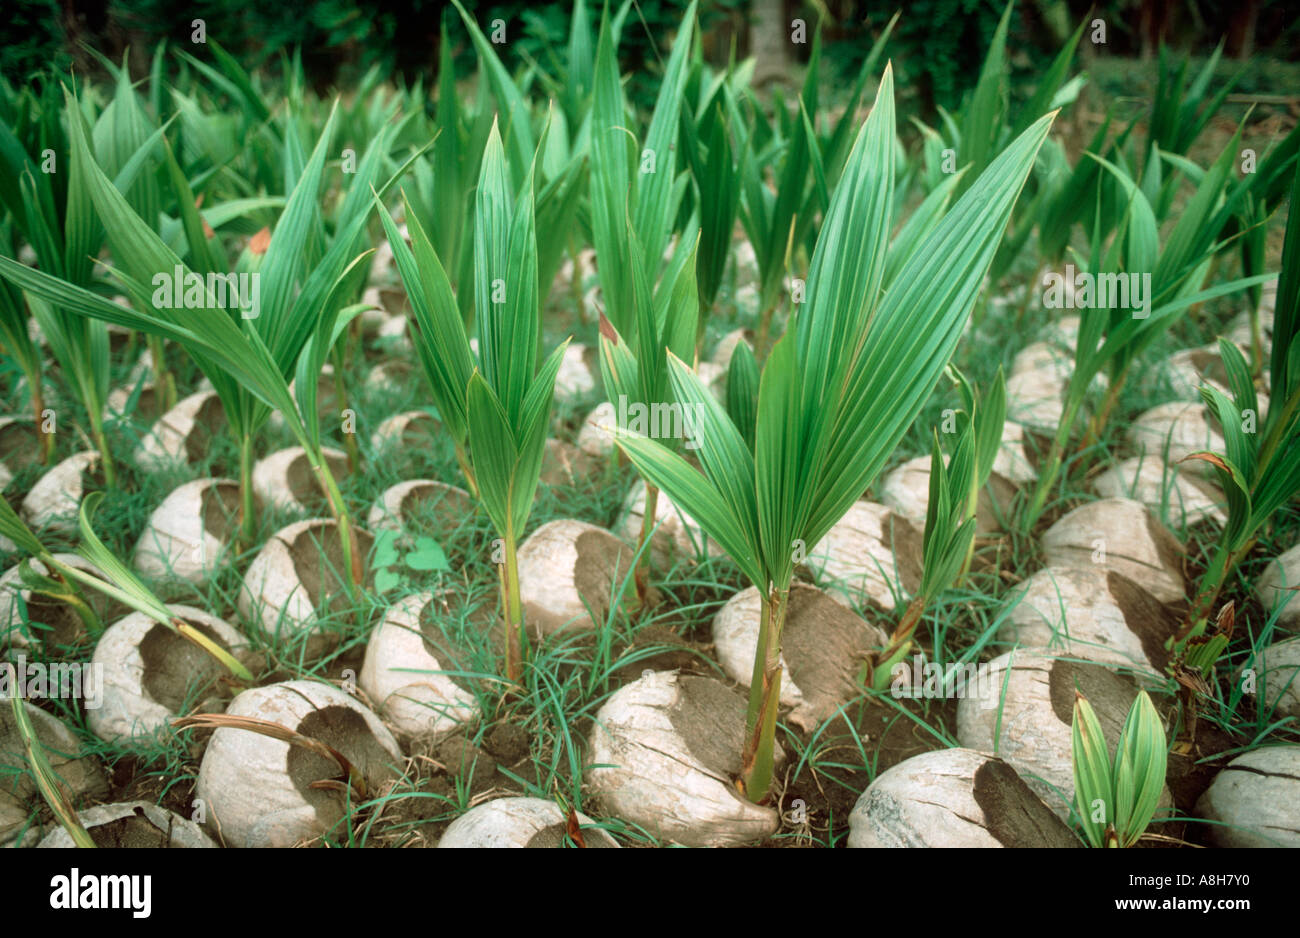 how to kill cocos palm seedlings